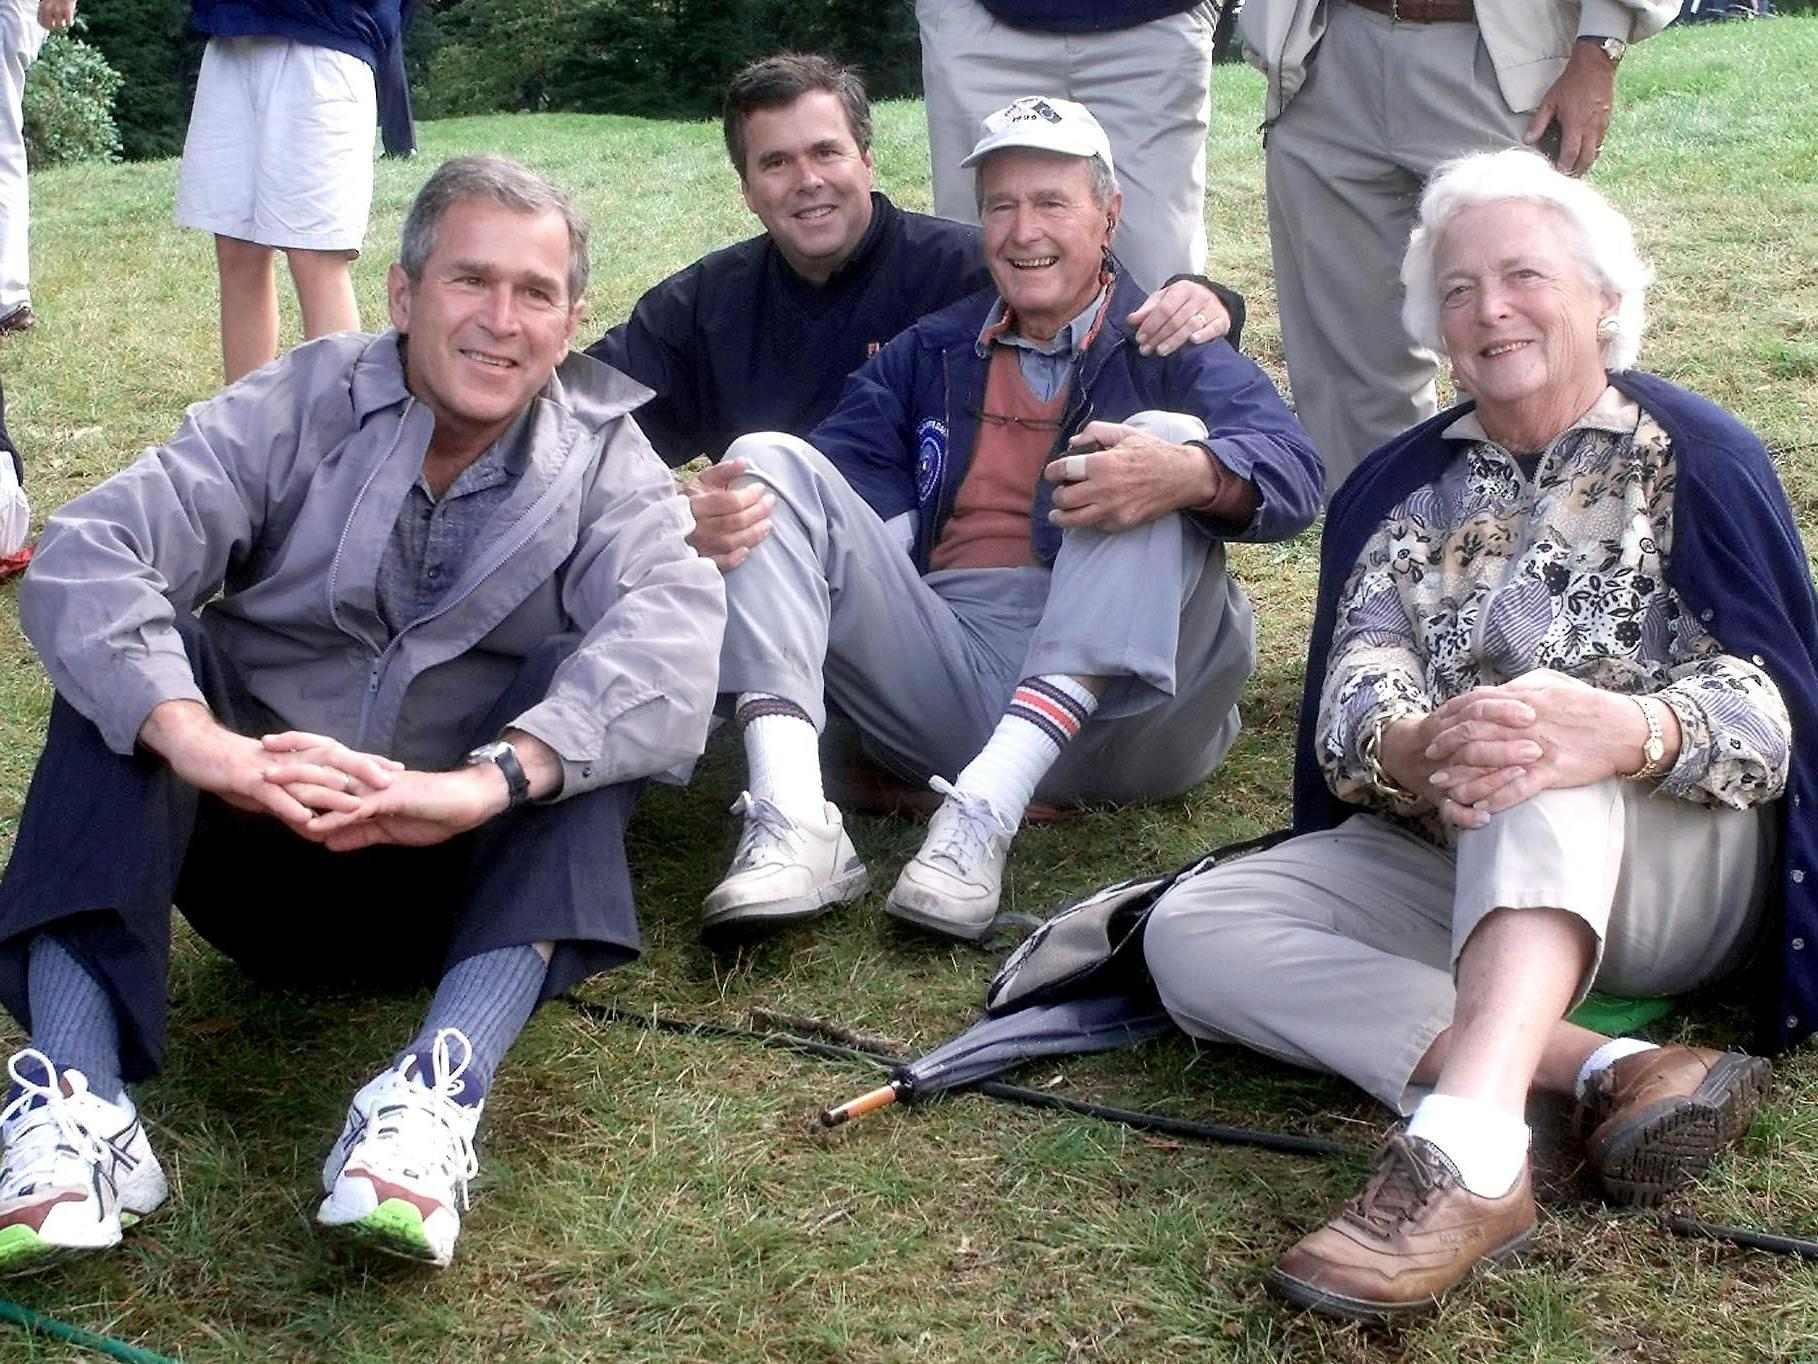 George W. Bush, Jeb Bush, former President George H.W. Bush and his wife Barbara Bush in September 1999 at the Ryder Cup in Brookline, Mass. (John Mottern/AFP/Getty Images)